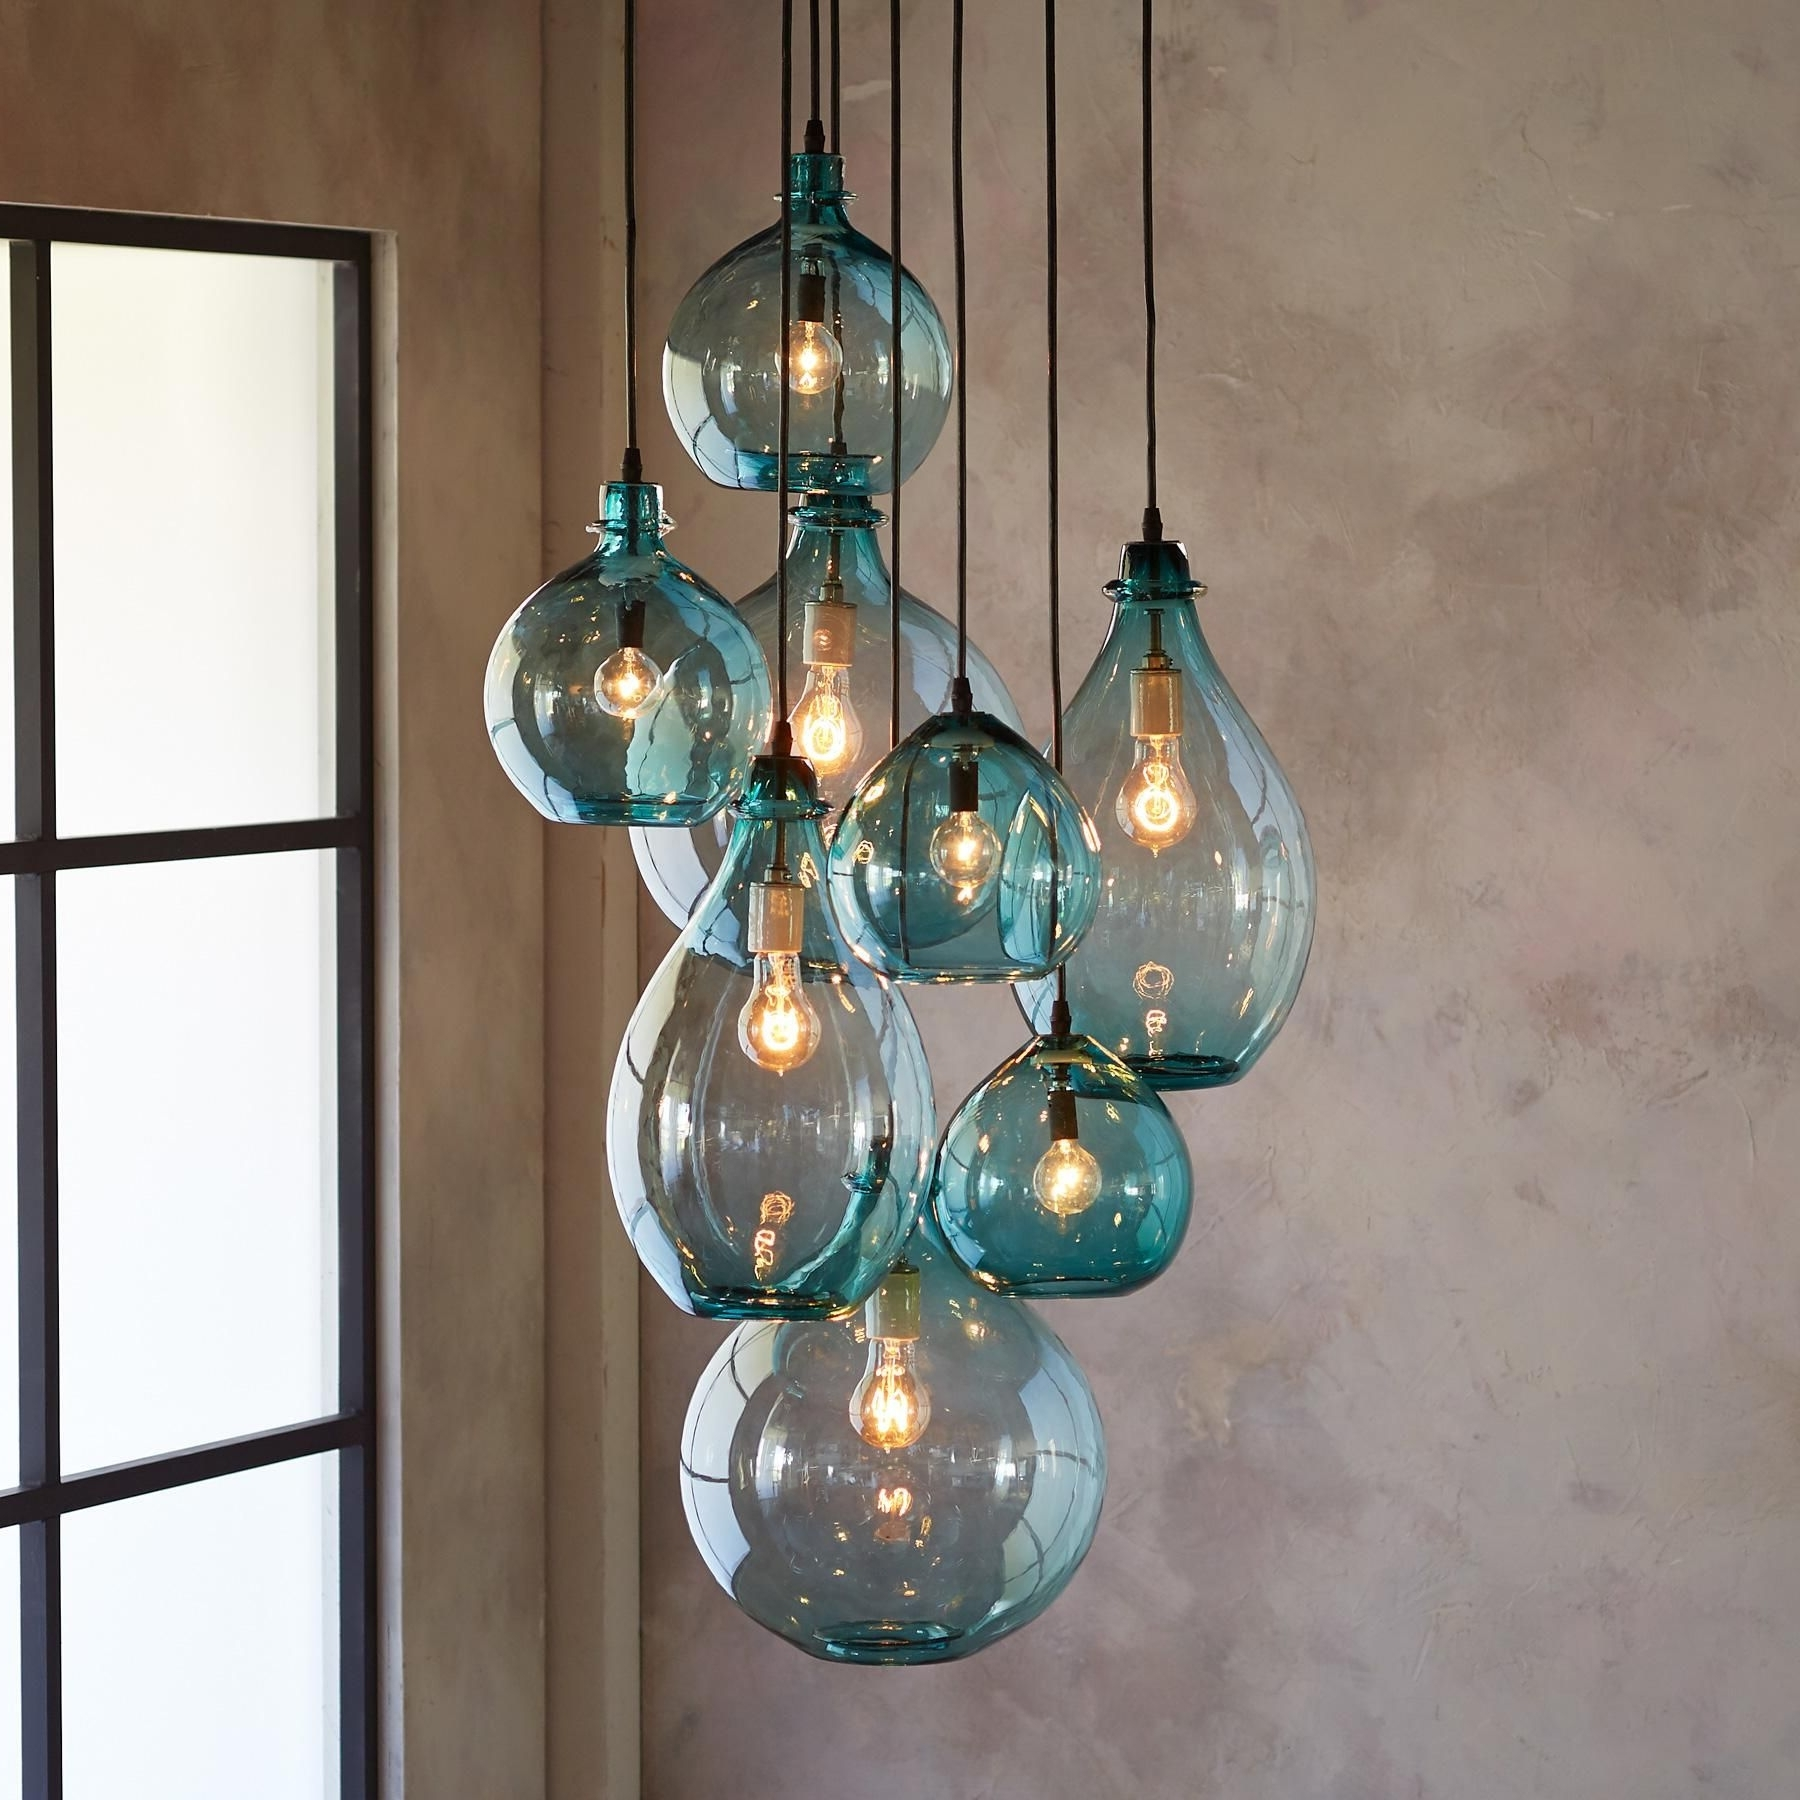 Salon Glass Pendant Canopy — Limpid Turquoise Drops Of Hand Blown Intended For Well Known Turquoise Chandelier Lights (View 15 of 20)